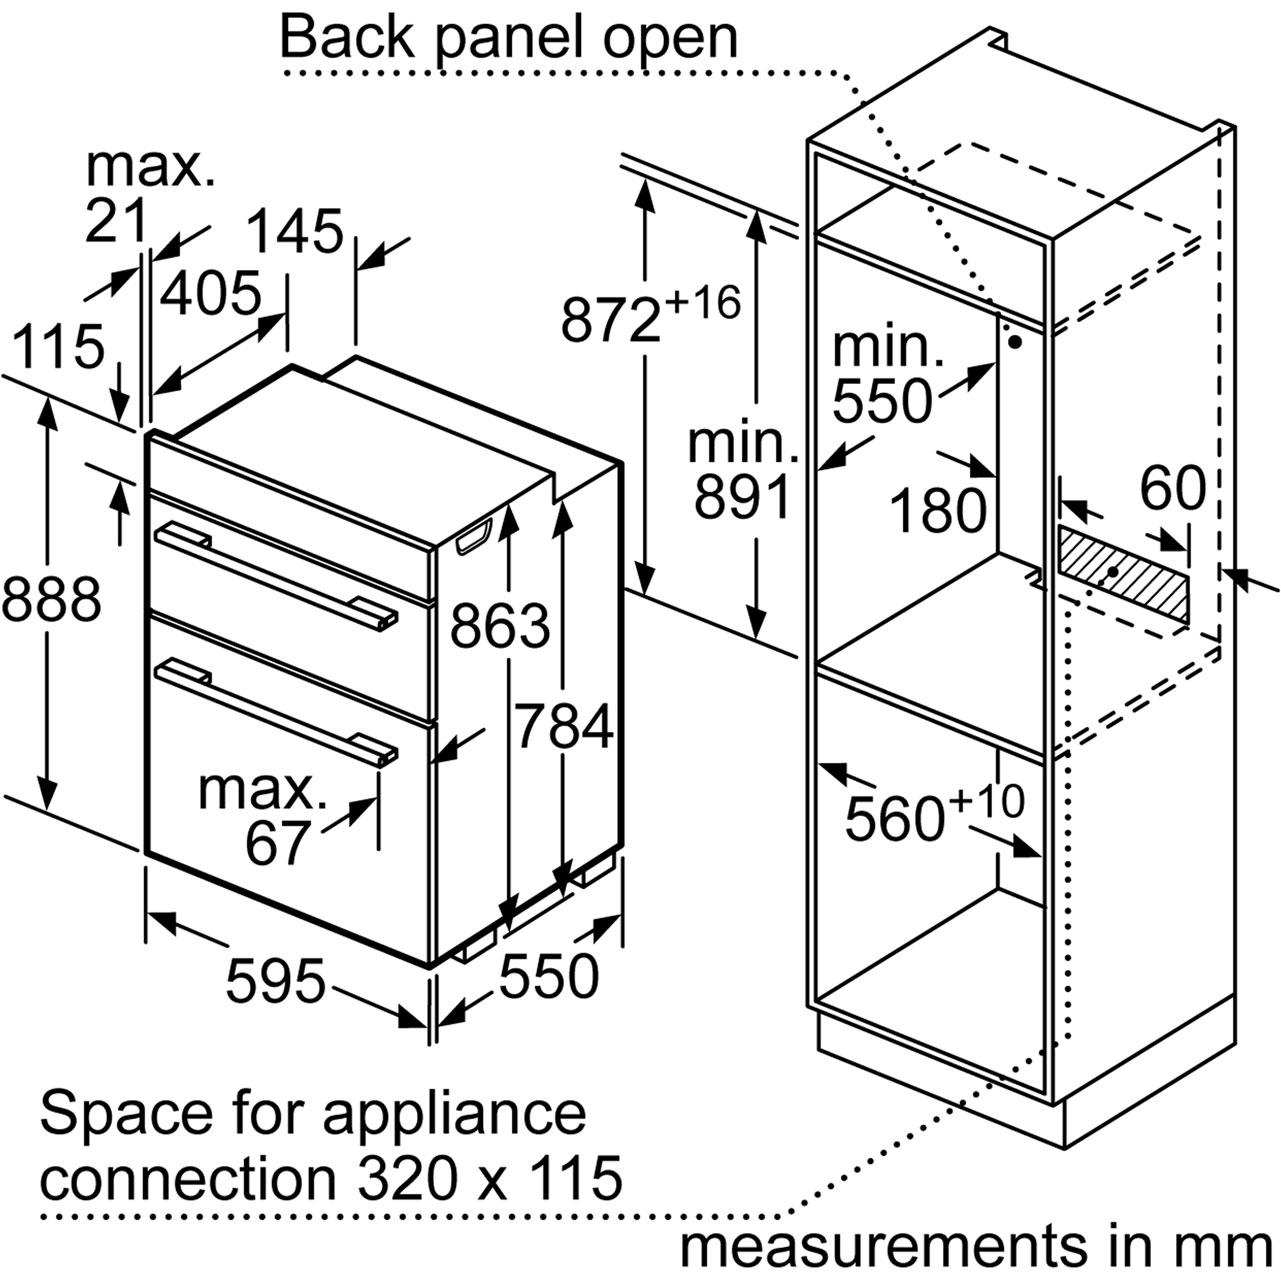 hight resolution of double oven wiring diagram wiring library rh 71 codingcommunity de double oven wiring diagram double oven wiring diagram